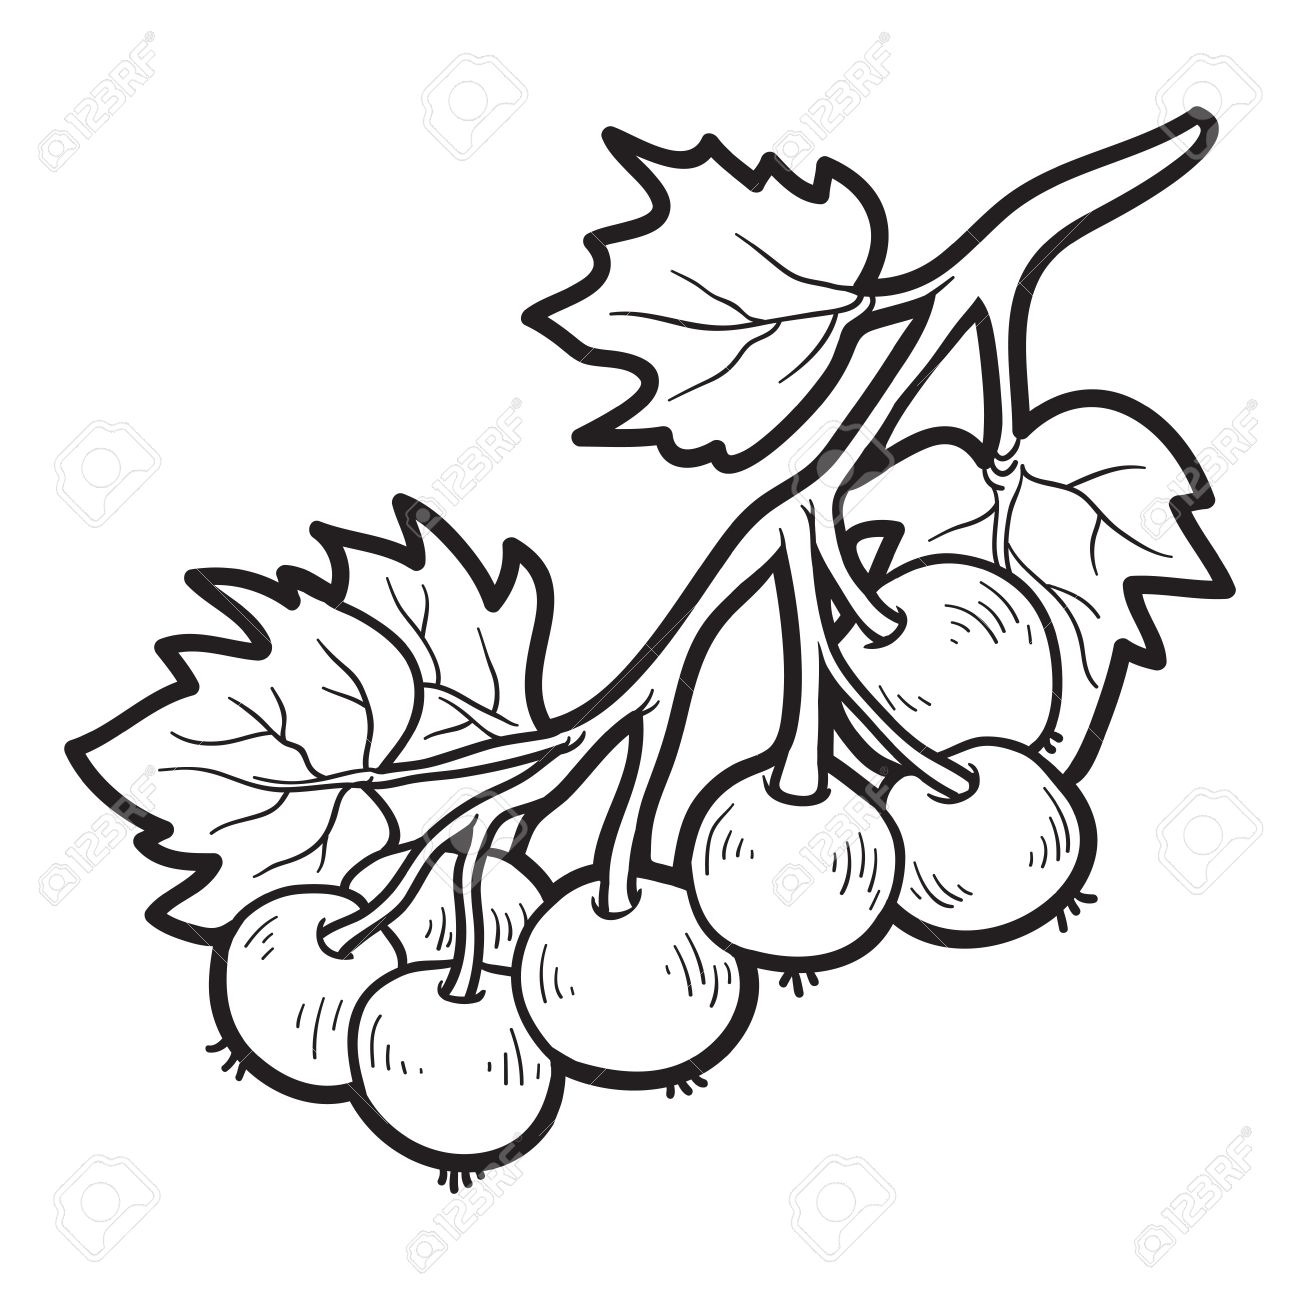 Coloring book pictures of vegetables - Coloring Book For Children Fruits And Vegetables Black Currants Stock Vector 41918422